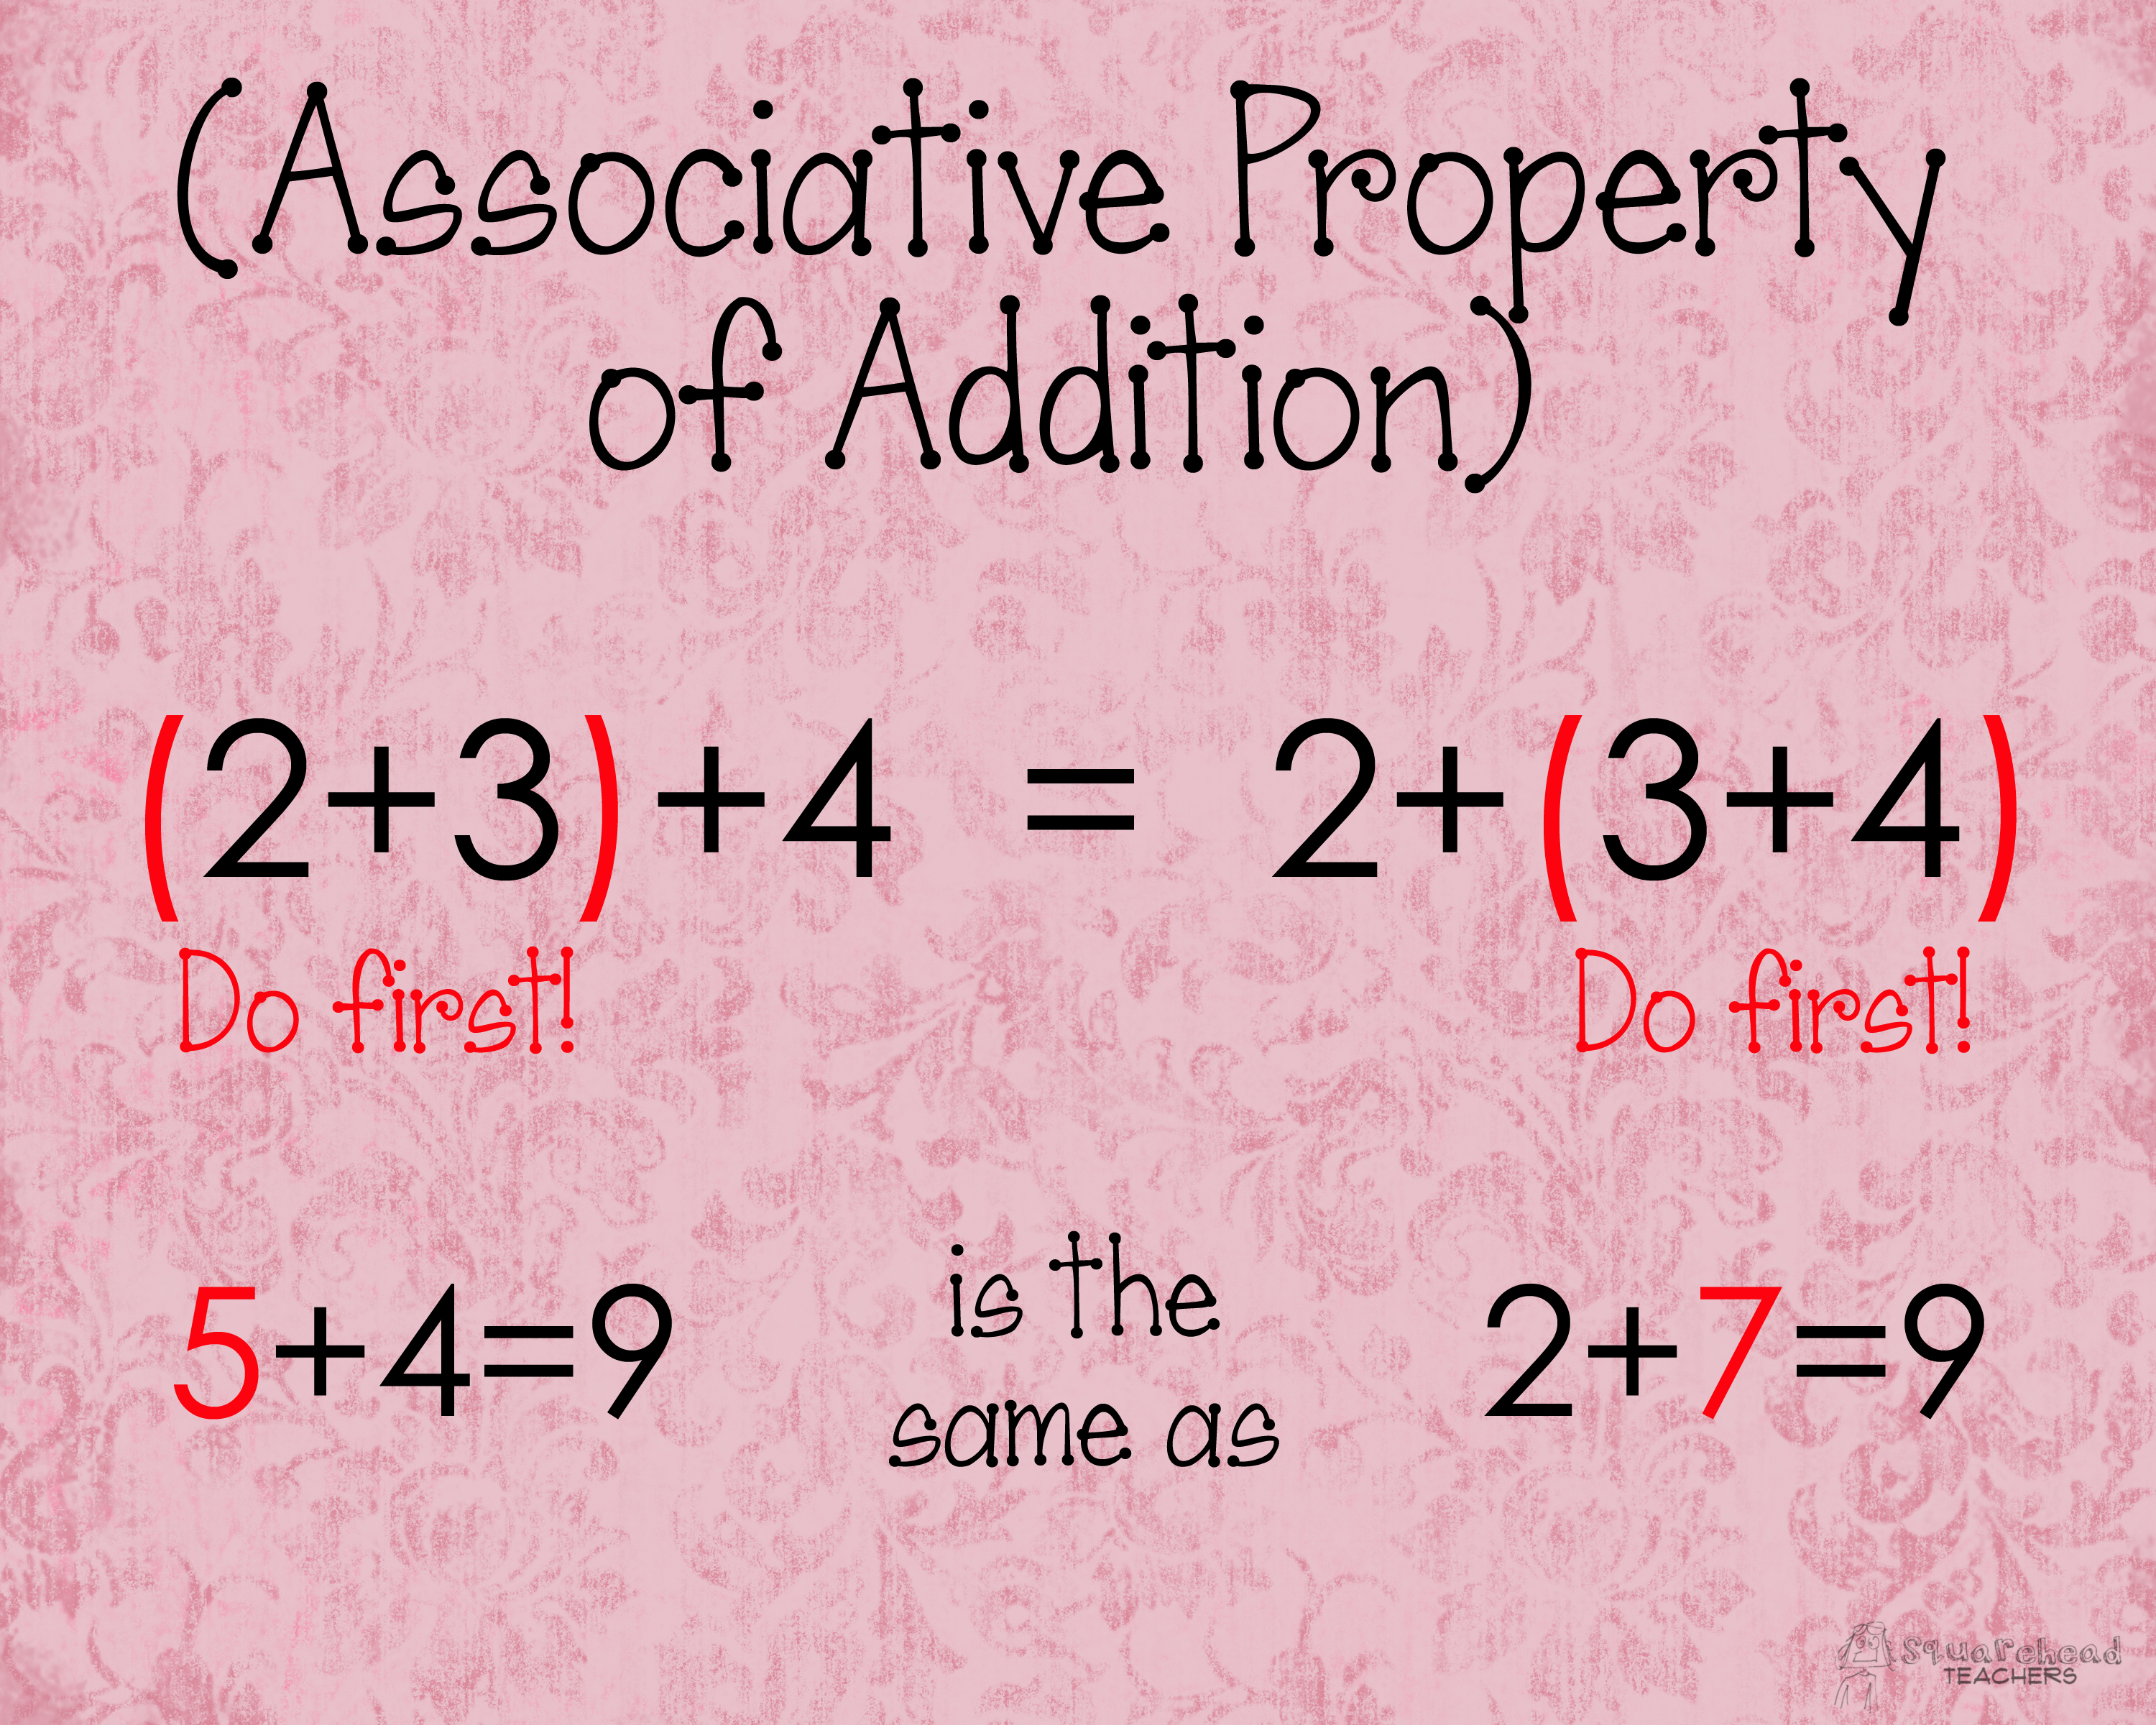 worksheet Properties Of Addition Worksheets associative property of addition poster squarehead teachers poster